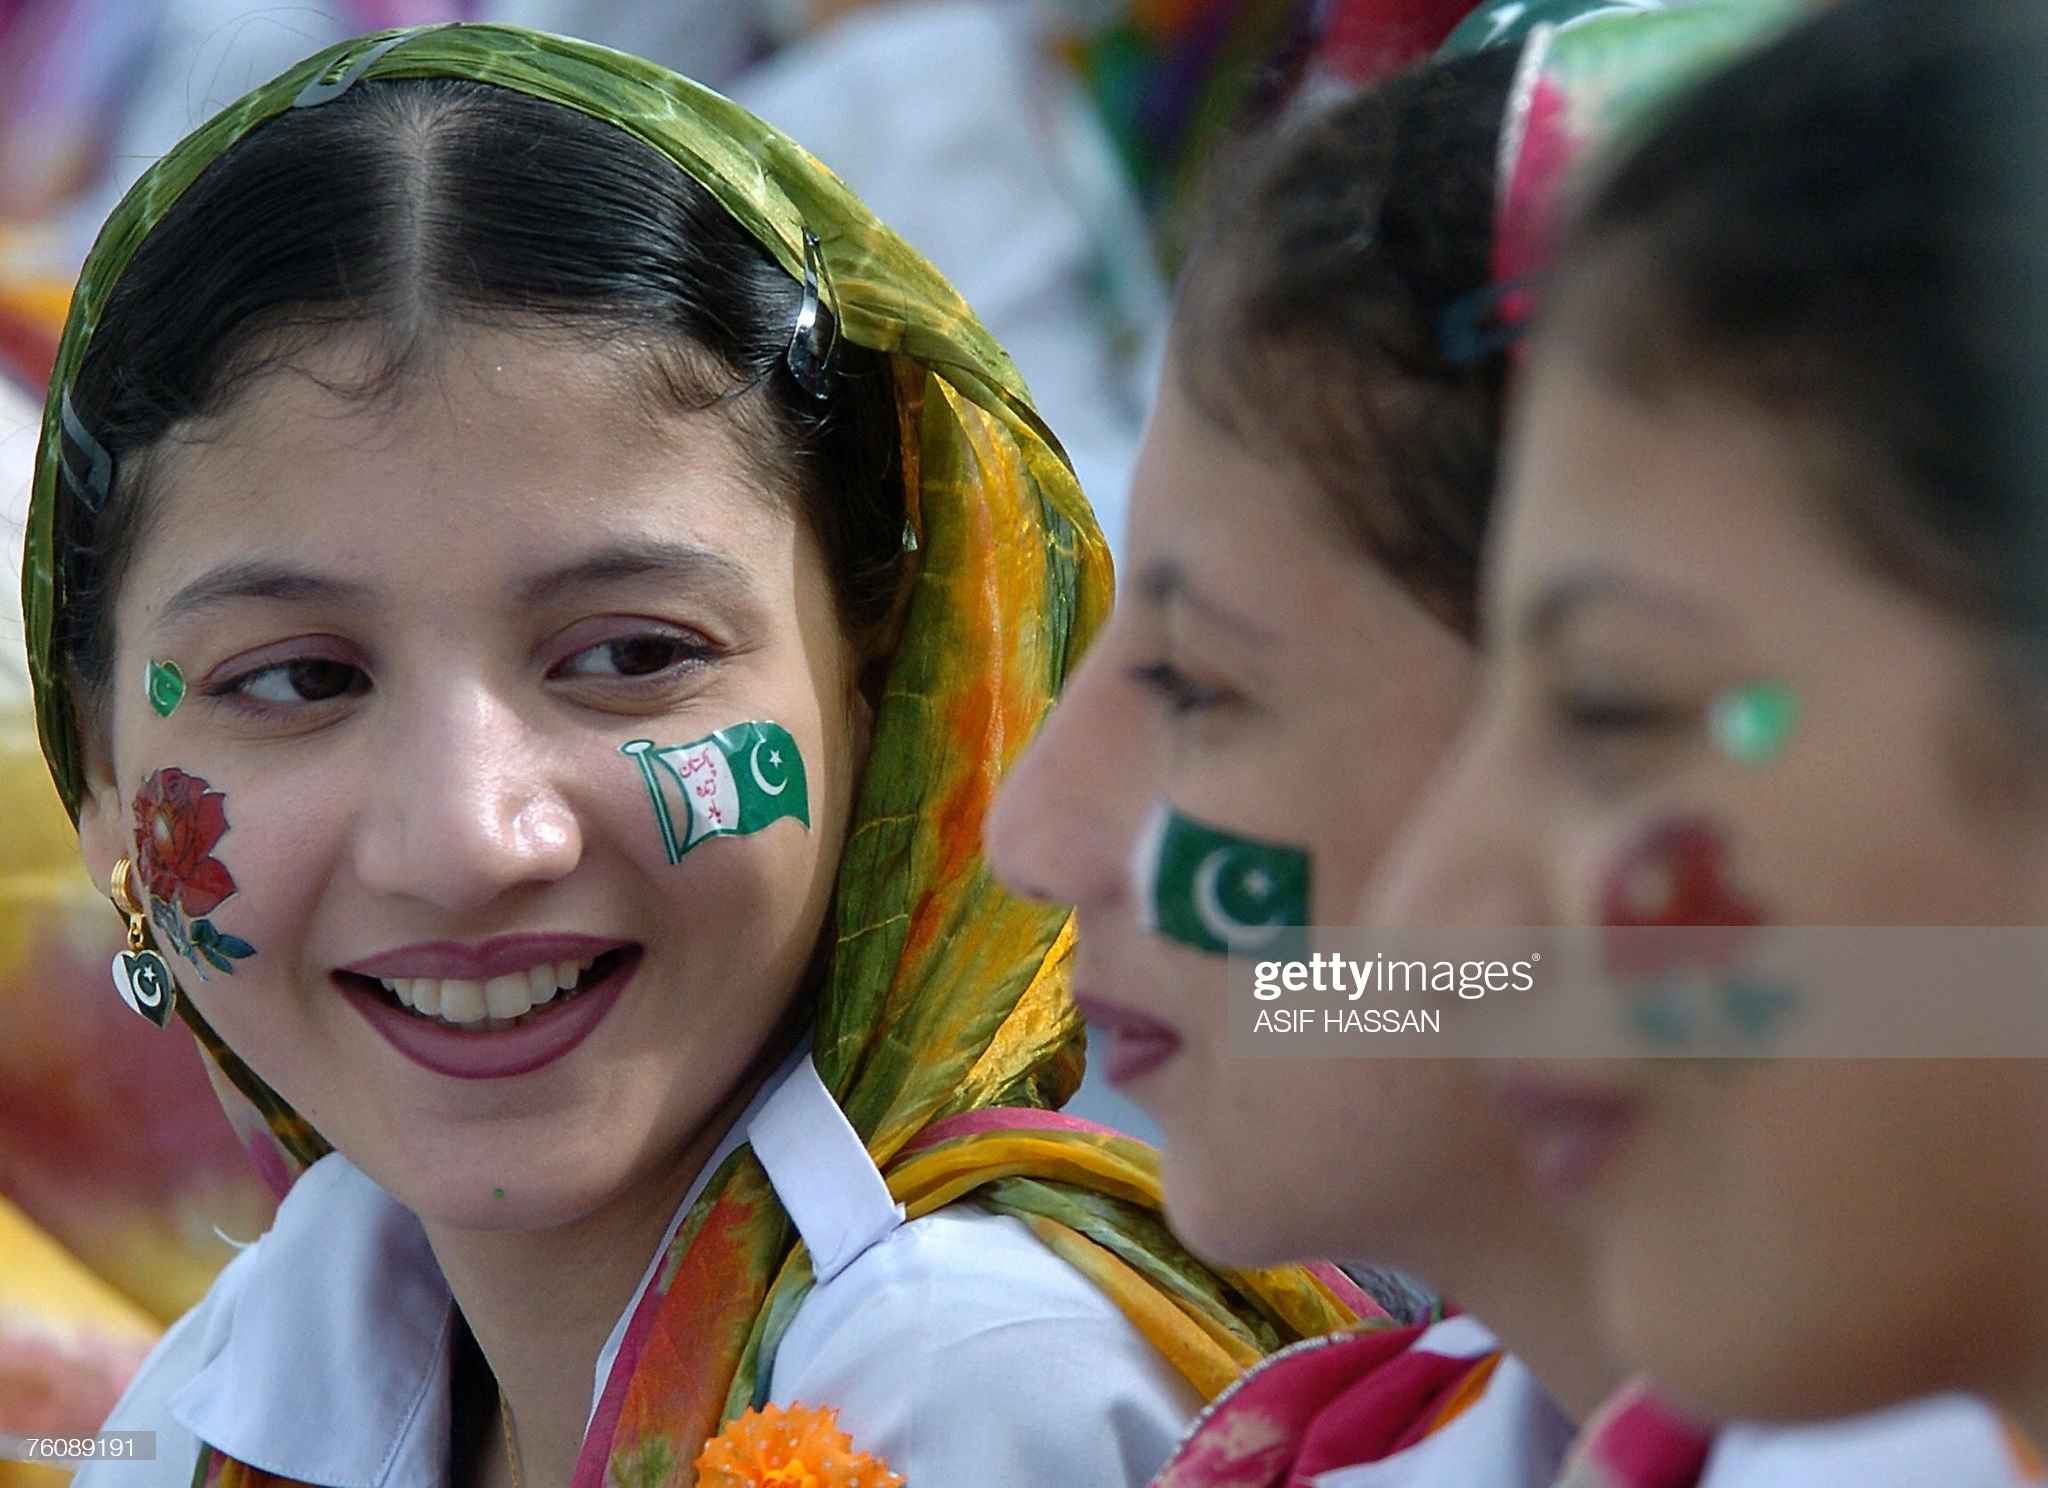 Pakistani girls, their faces painted in : News Photo